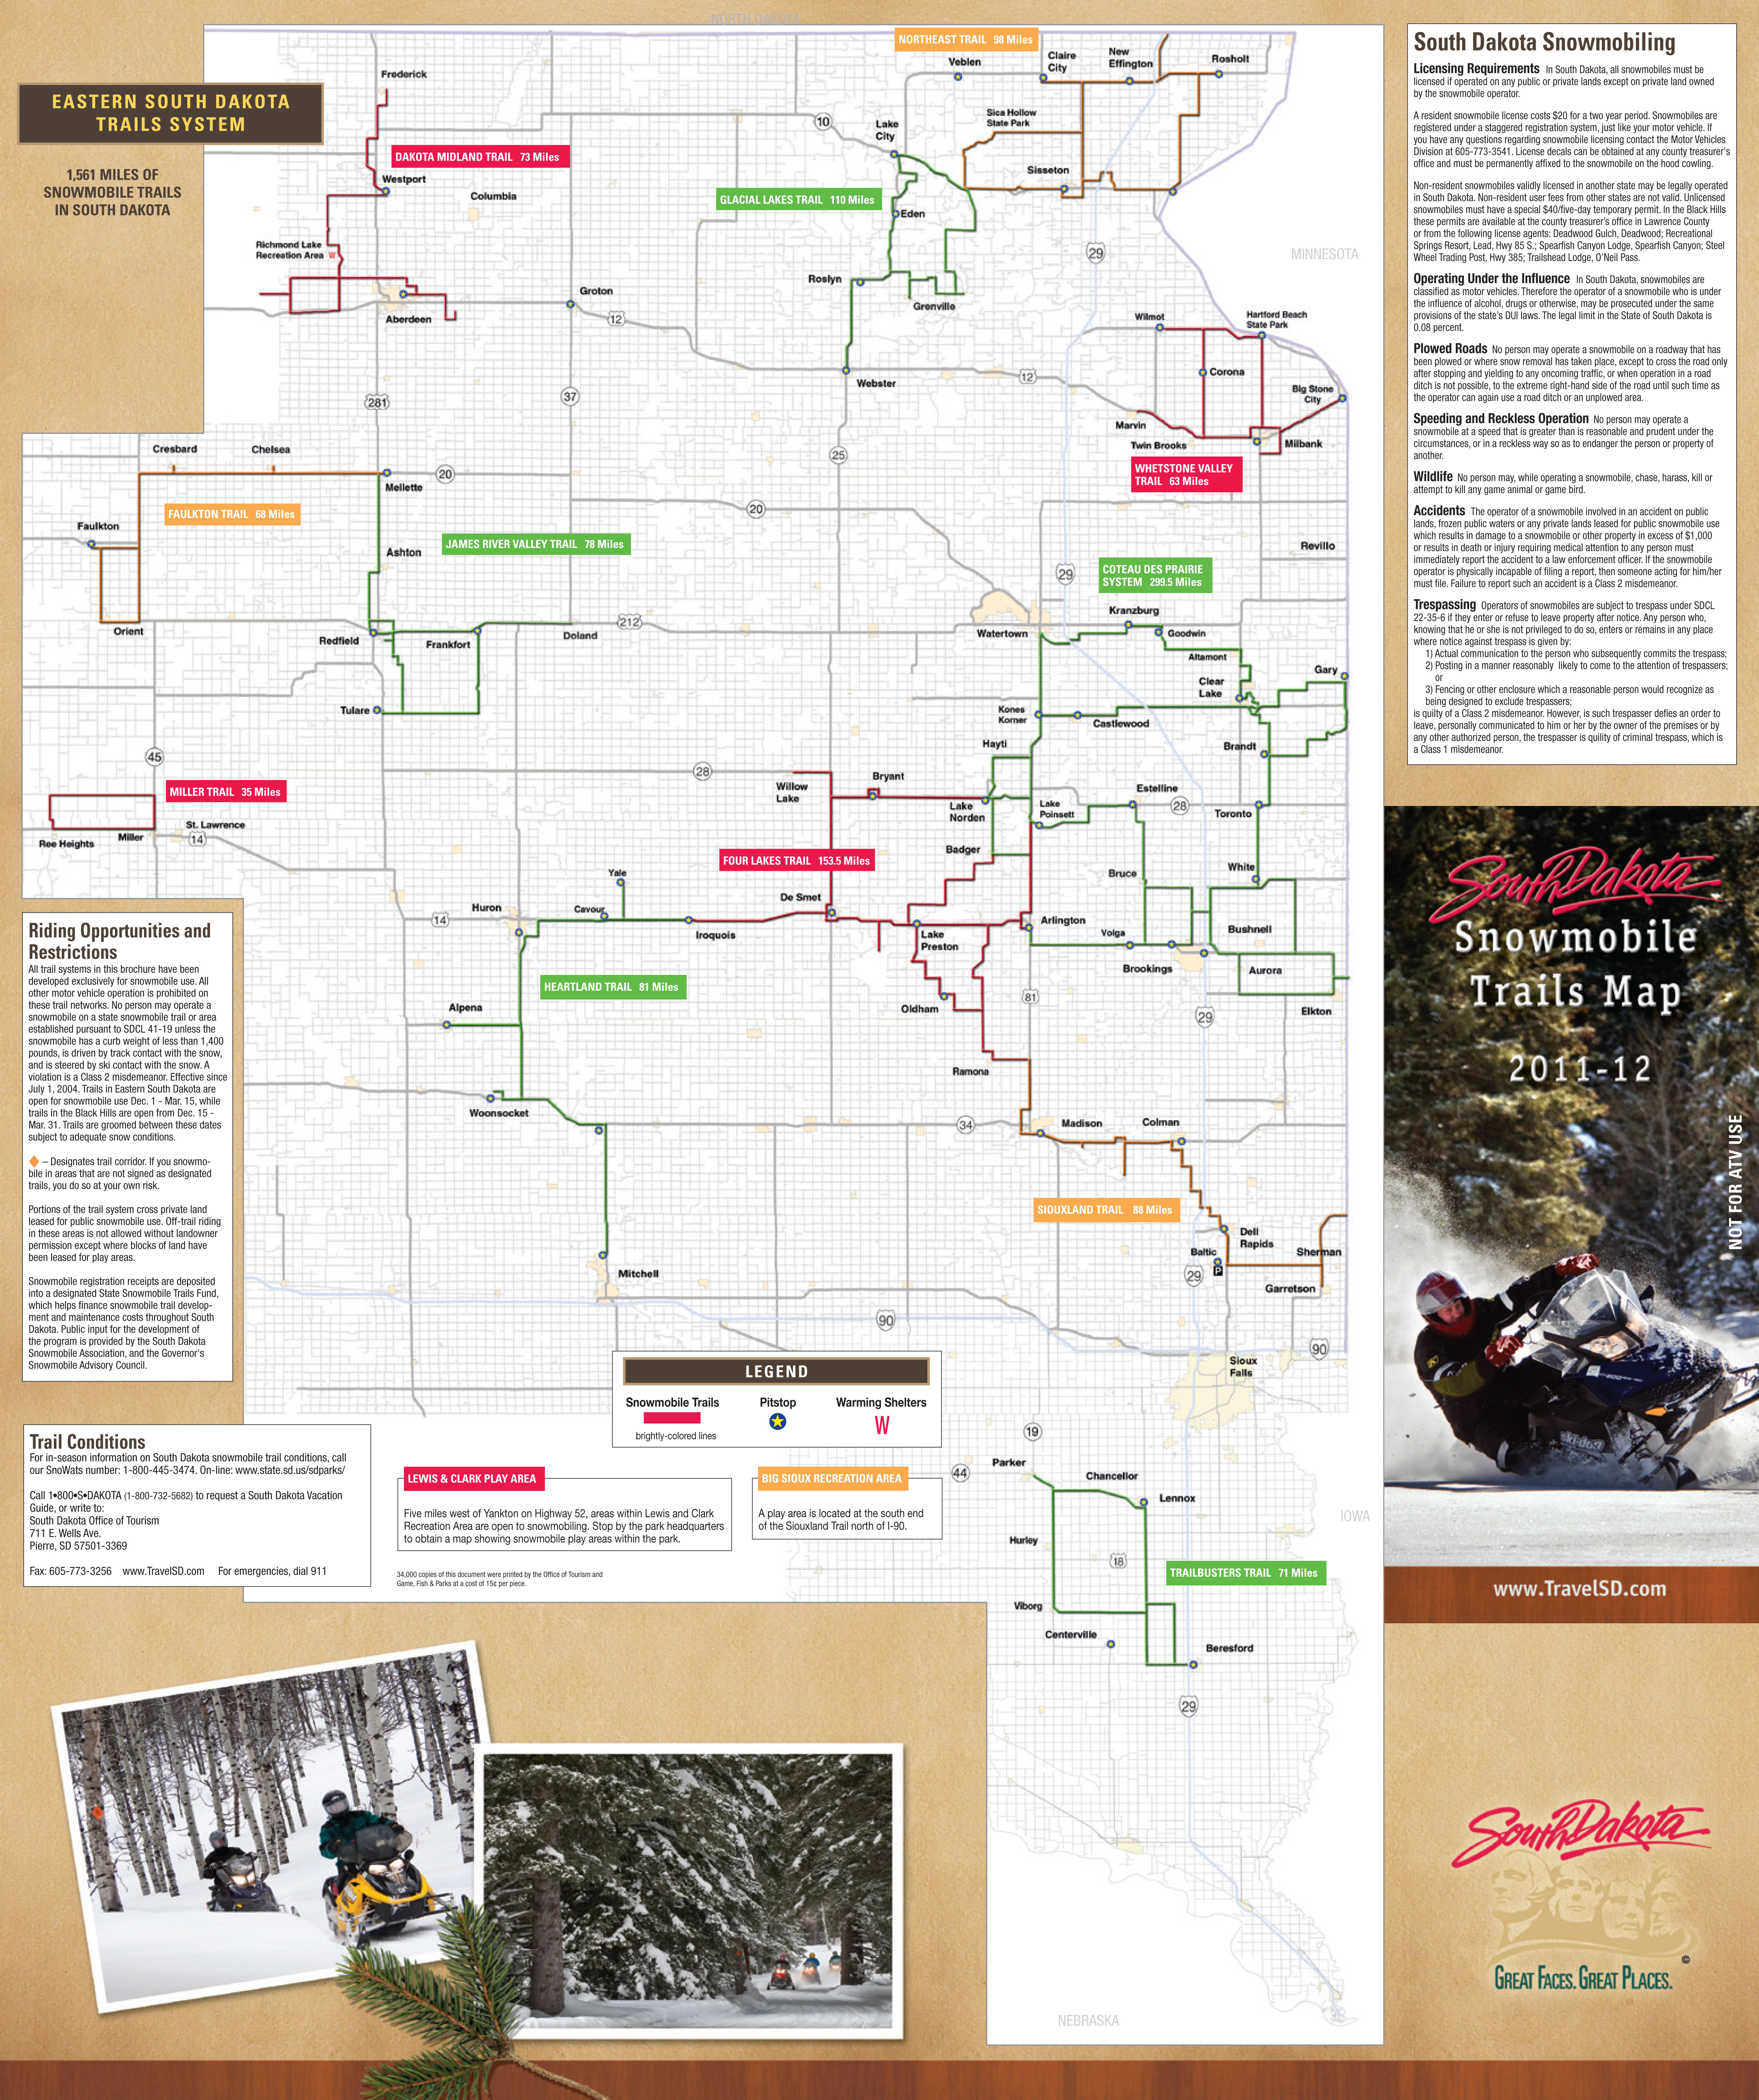 Research Shows Black Hills Are Truly a Winter Wonderland ...  |Black Hills Trail Reports